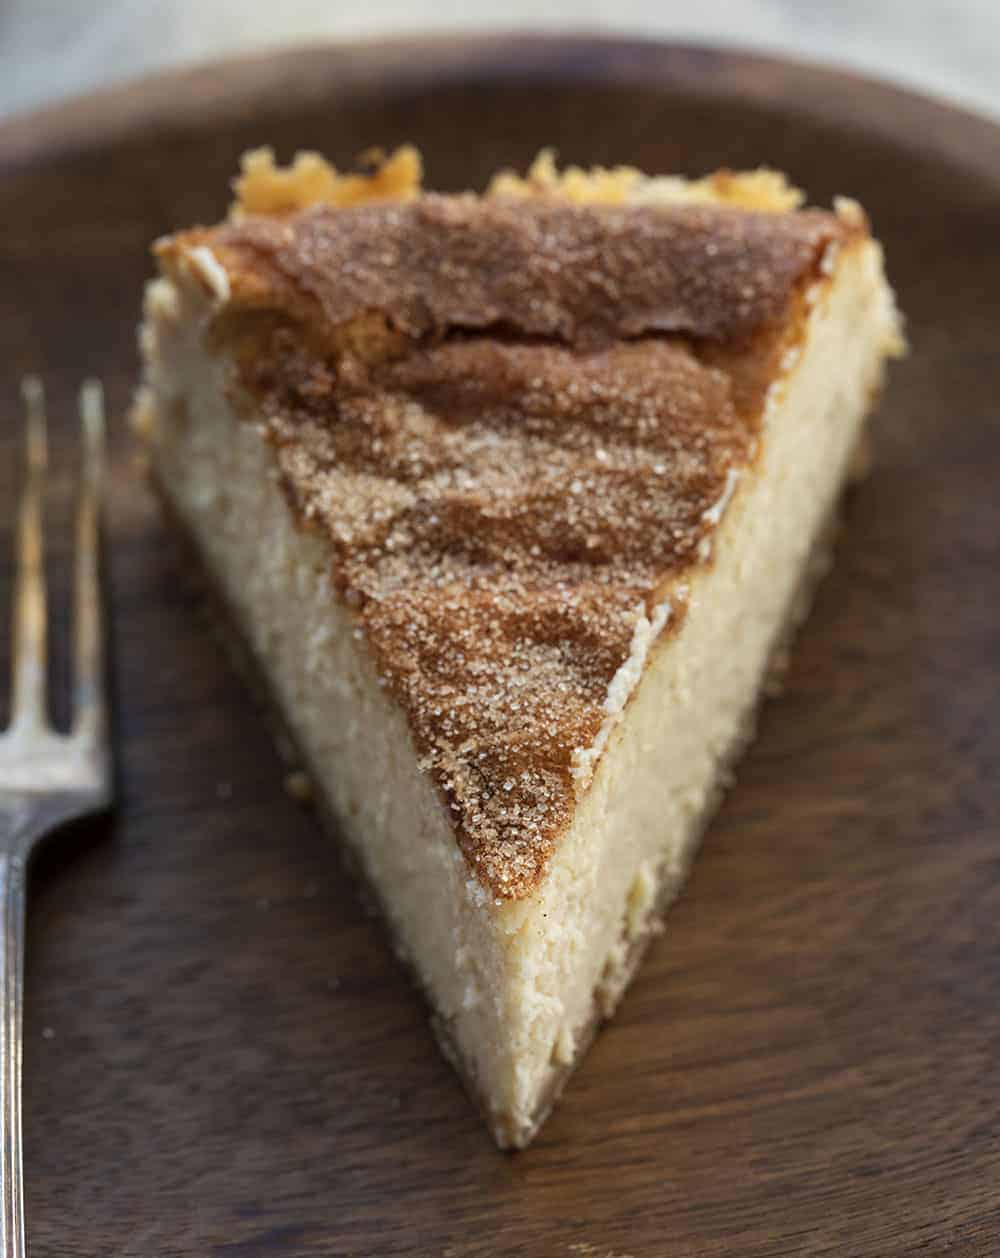 One Slice of Snickerdoodle Cheesecake on Wood Plate